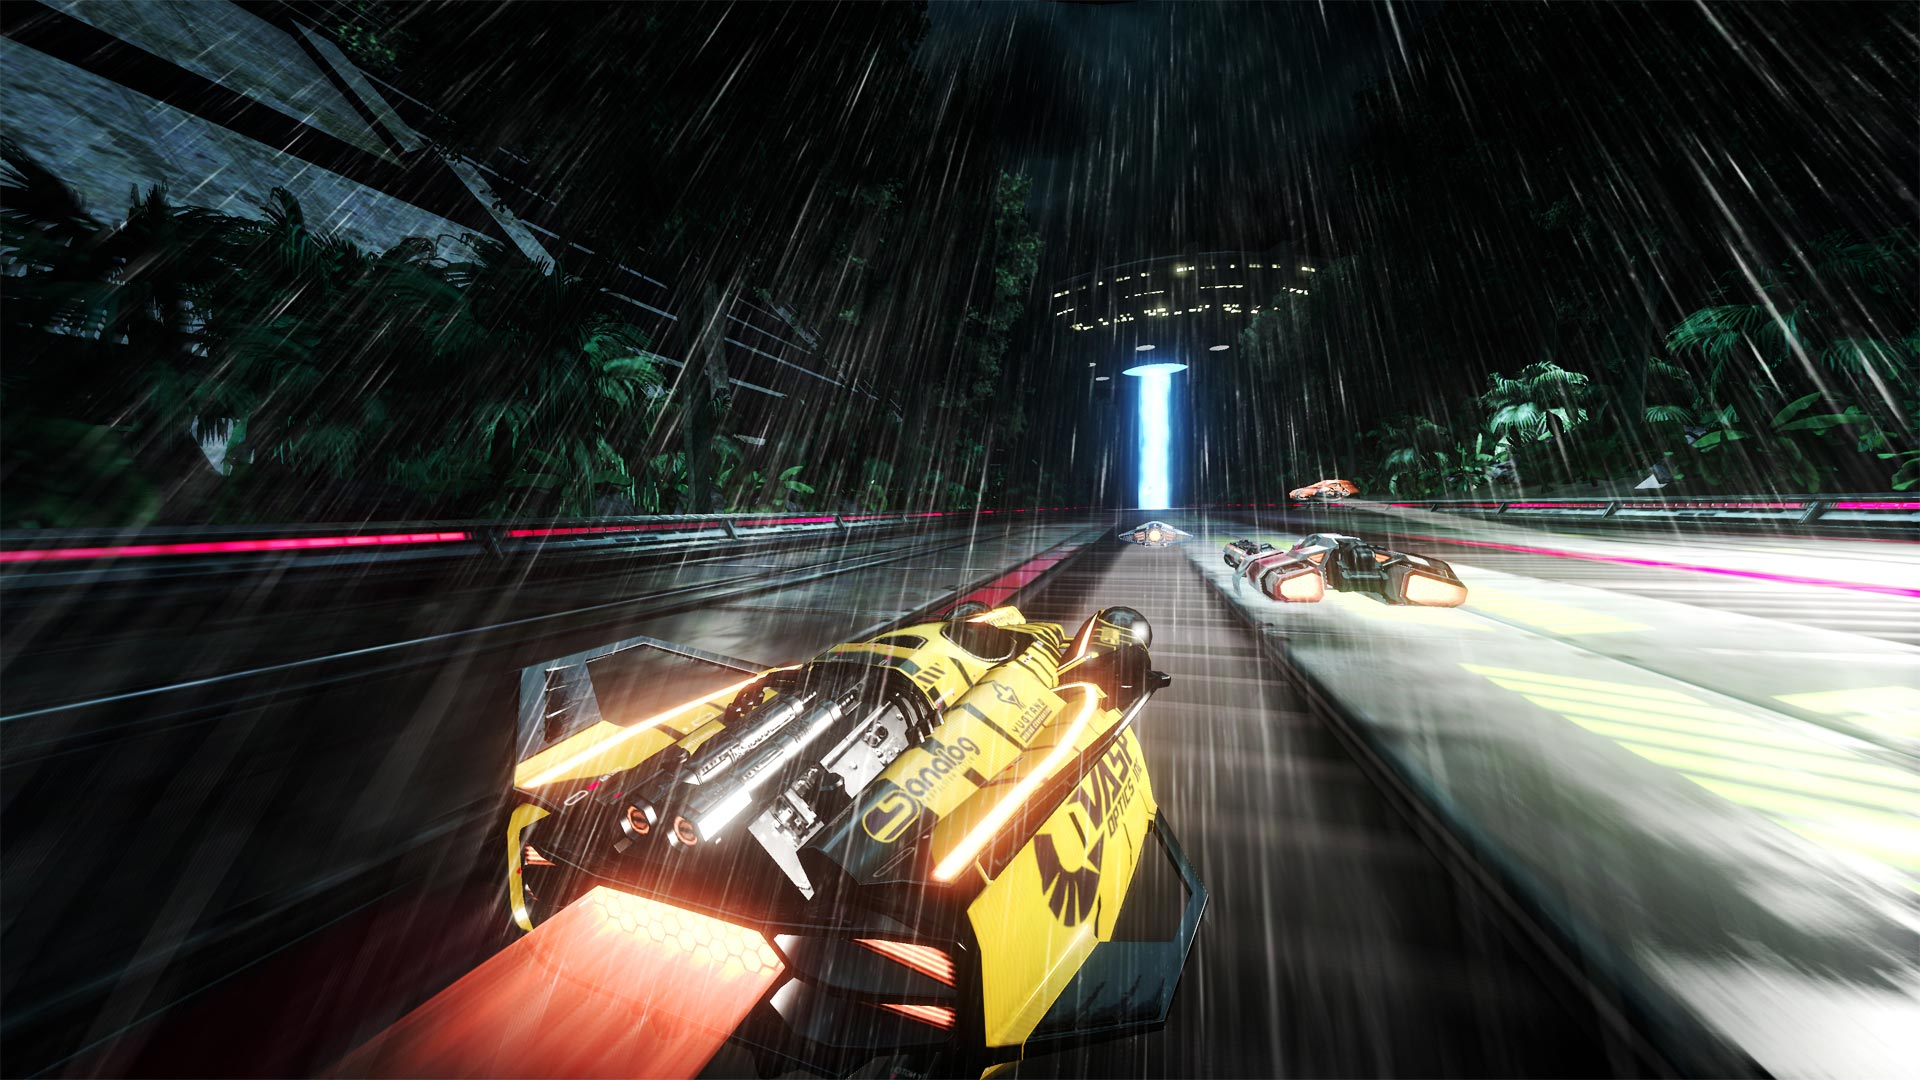 Modojo | One Image Change Could Make The Difference In Fast RMX